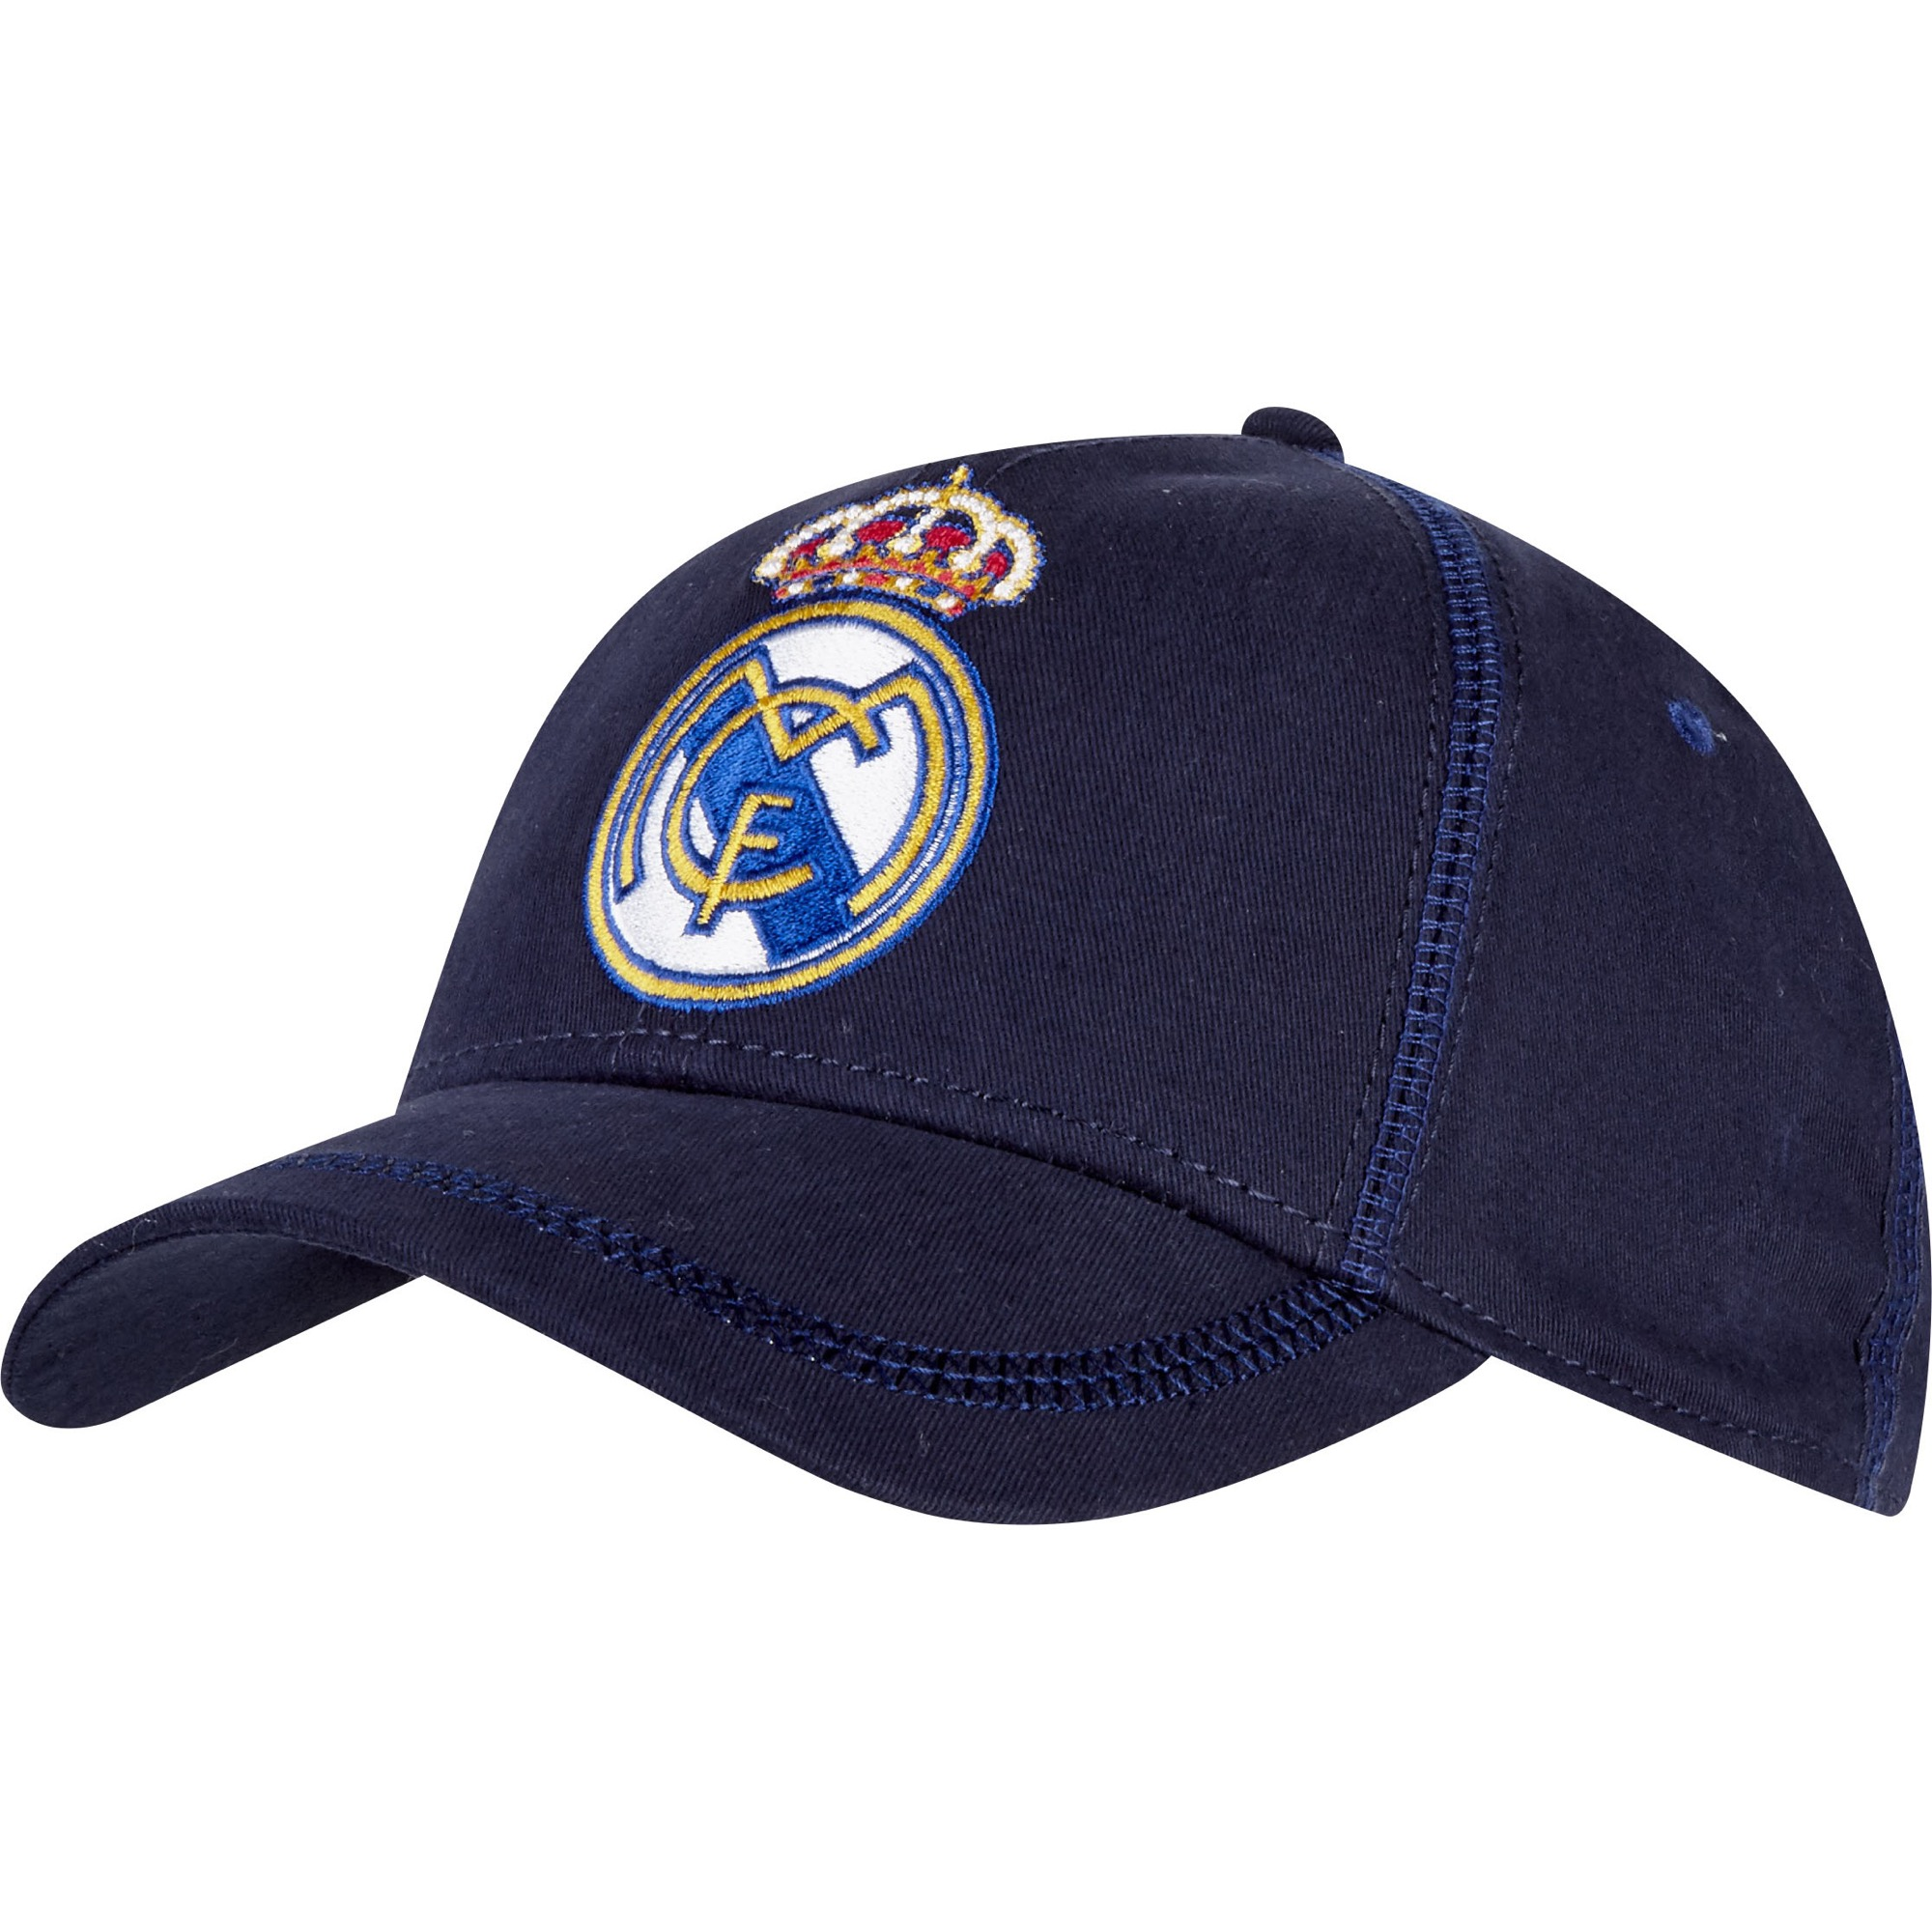 Casquette de fan Real Madrid - Bleu marine - Adulte